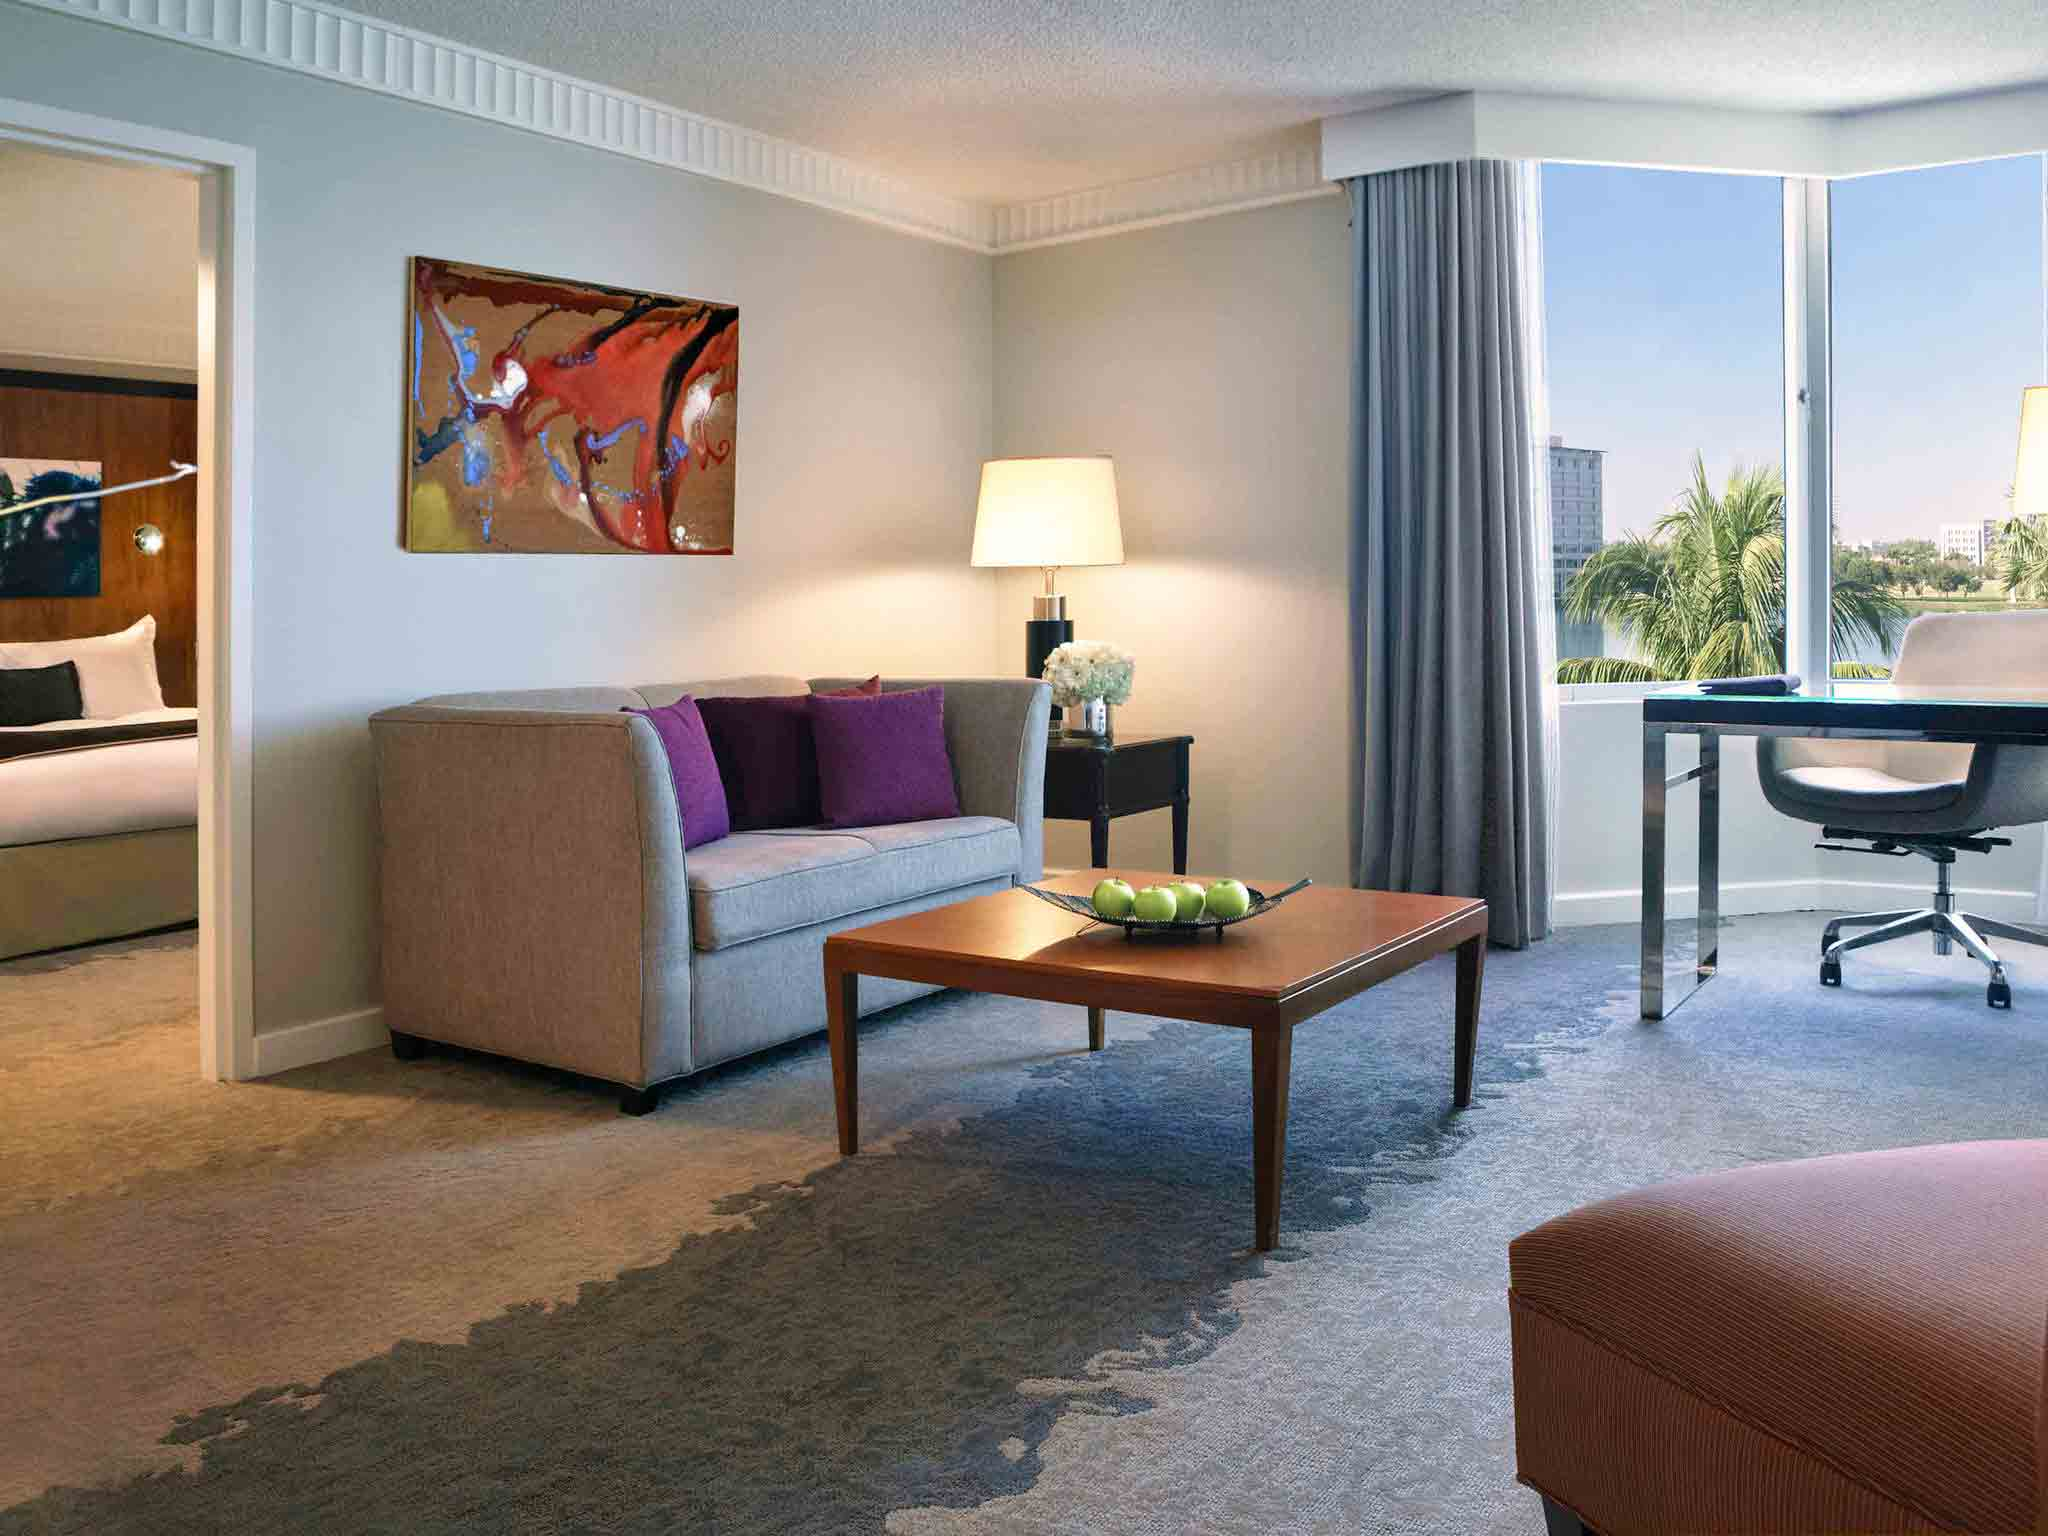 Miami Airport Hotels Pullman Miami Hotel Hotels Near MIA - 8 awesome extras in luxury hotel rooms